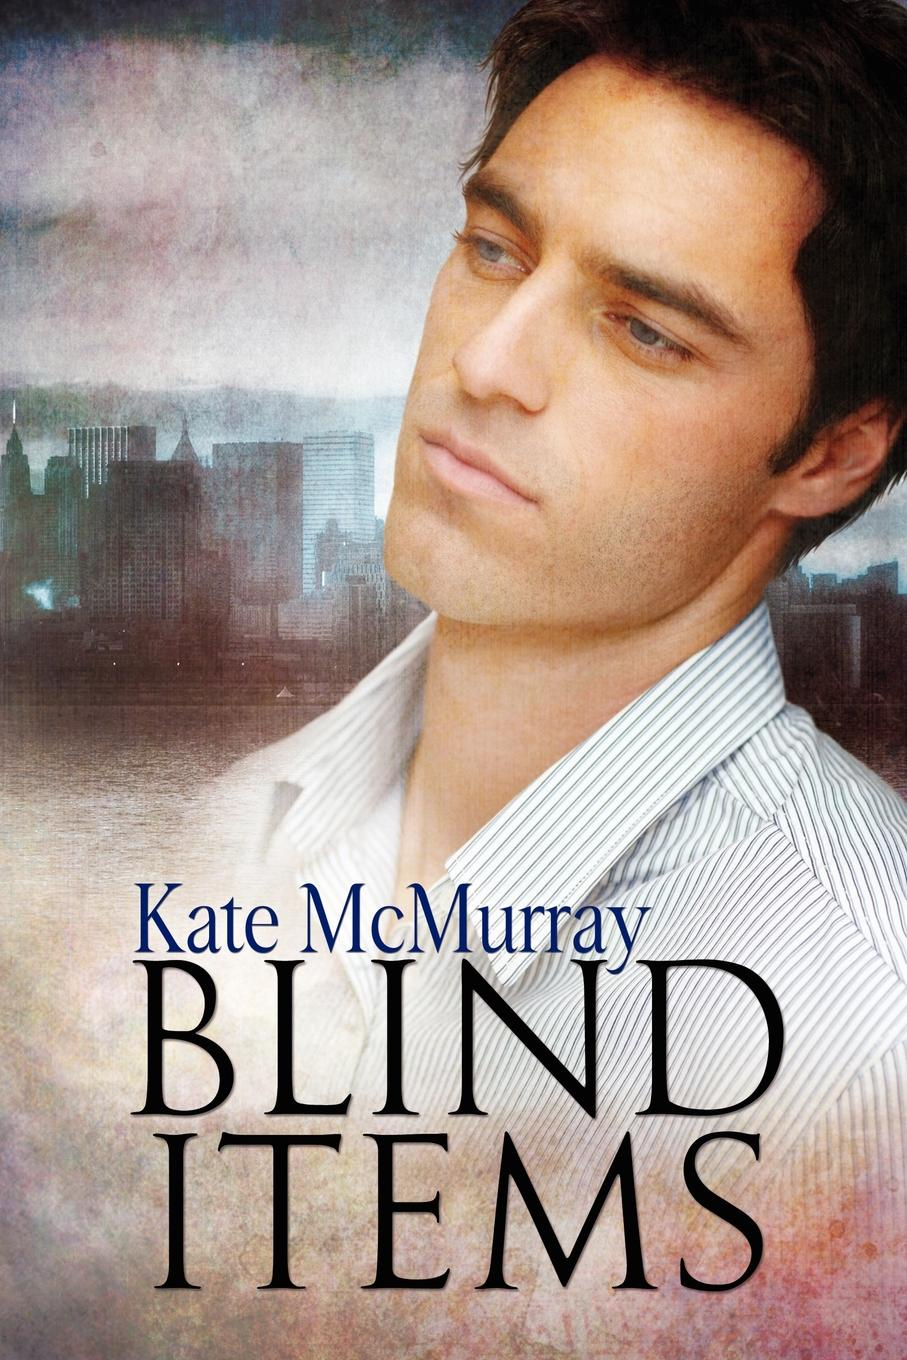 Kate McMurray Blind Items